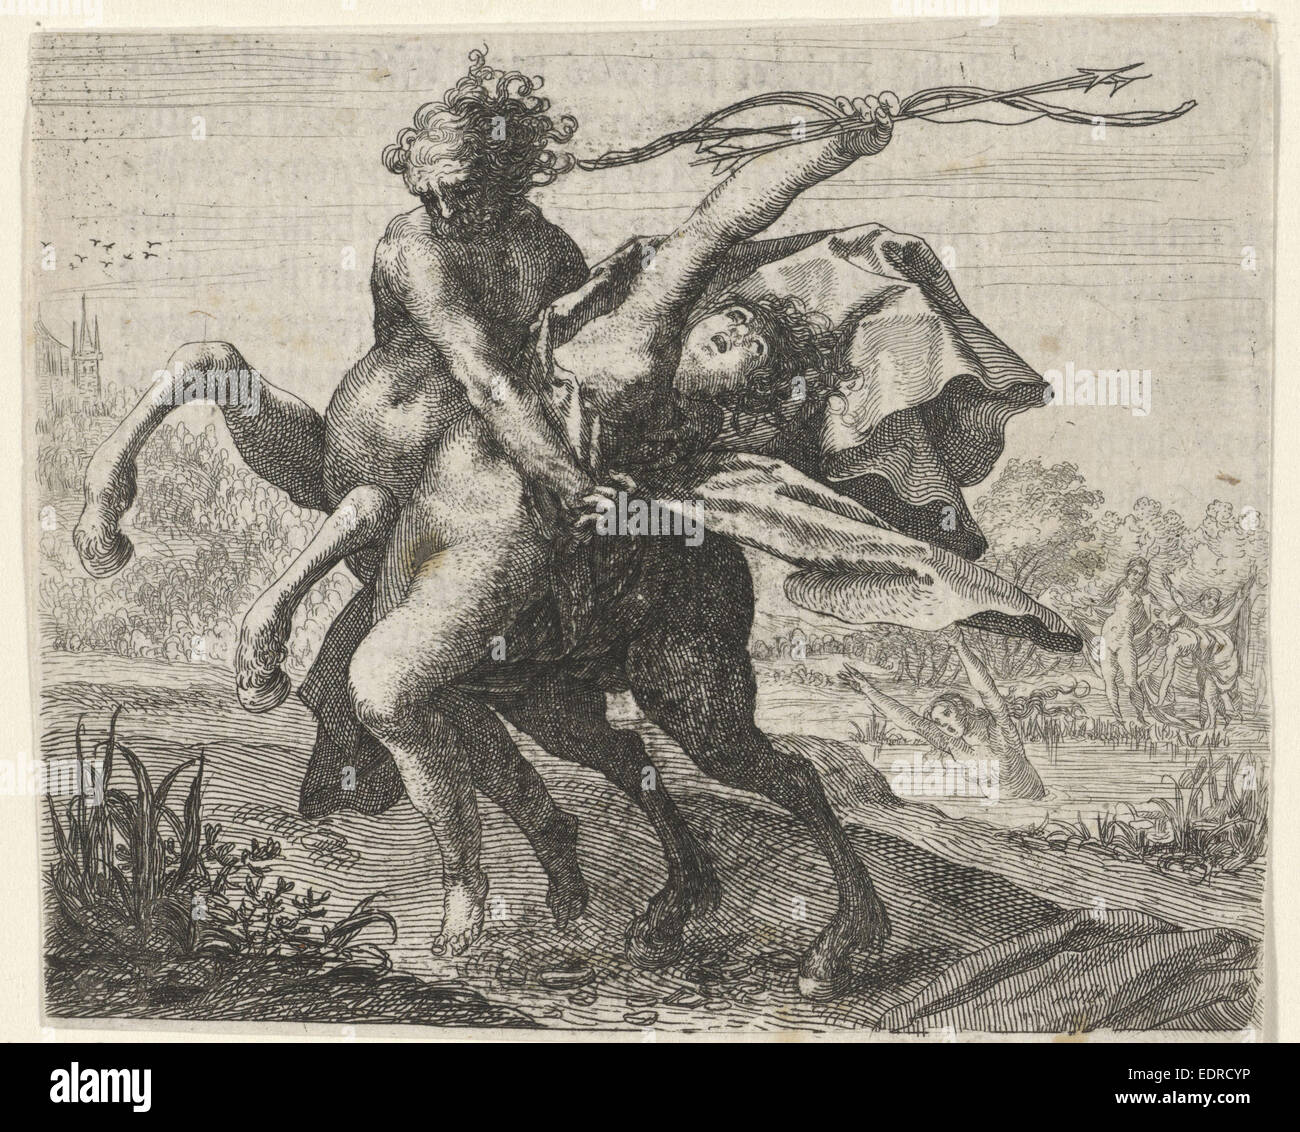 Fable of the abduction of a woman by a centaur, Aegidius Sadeler, 1608 - Stock Image